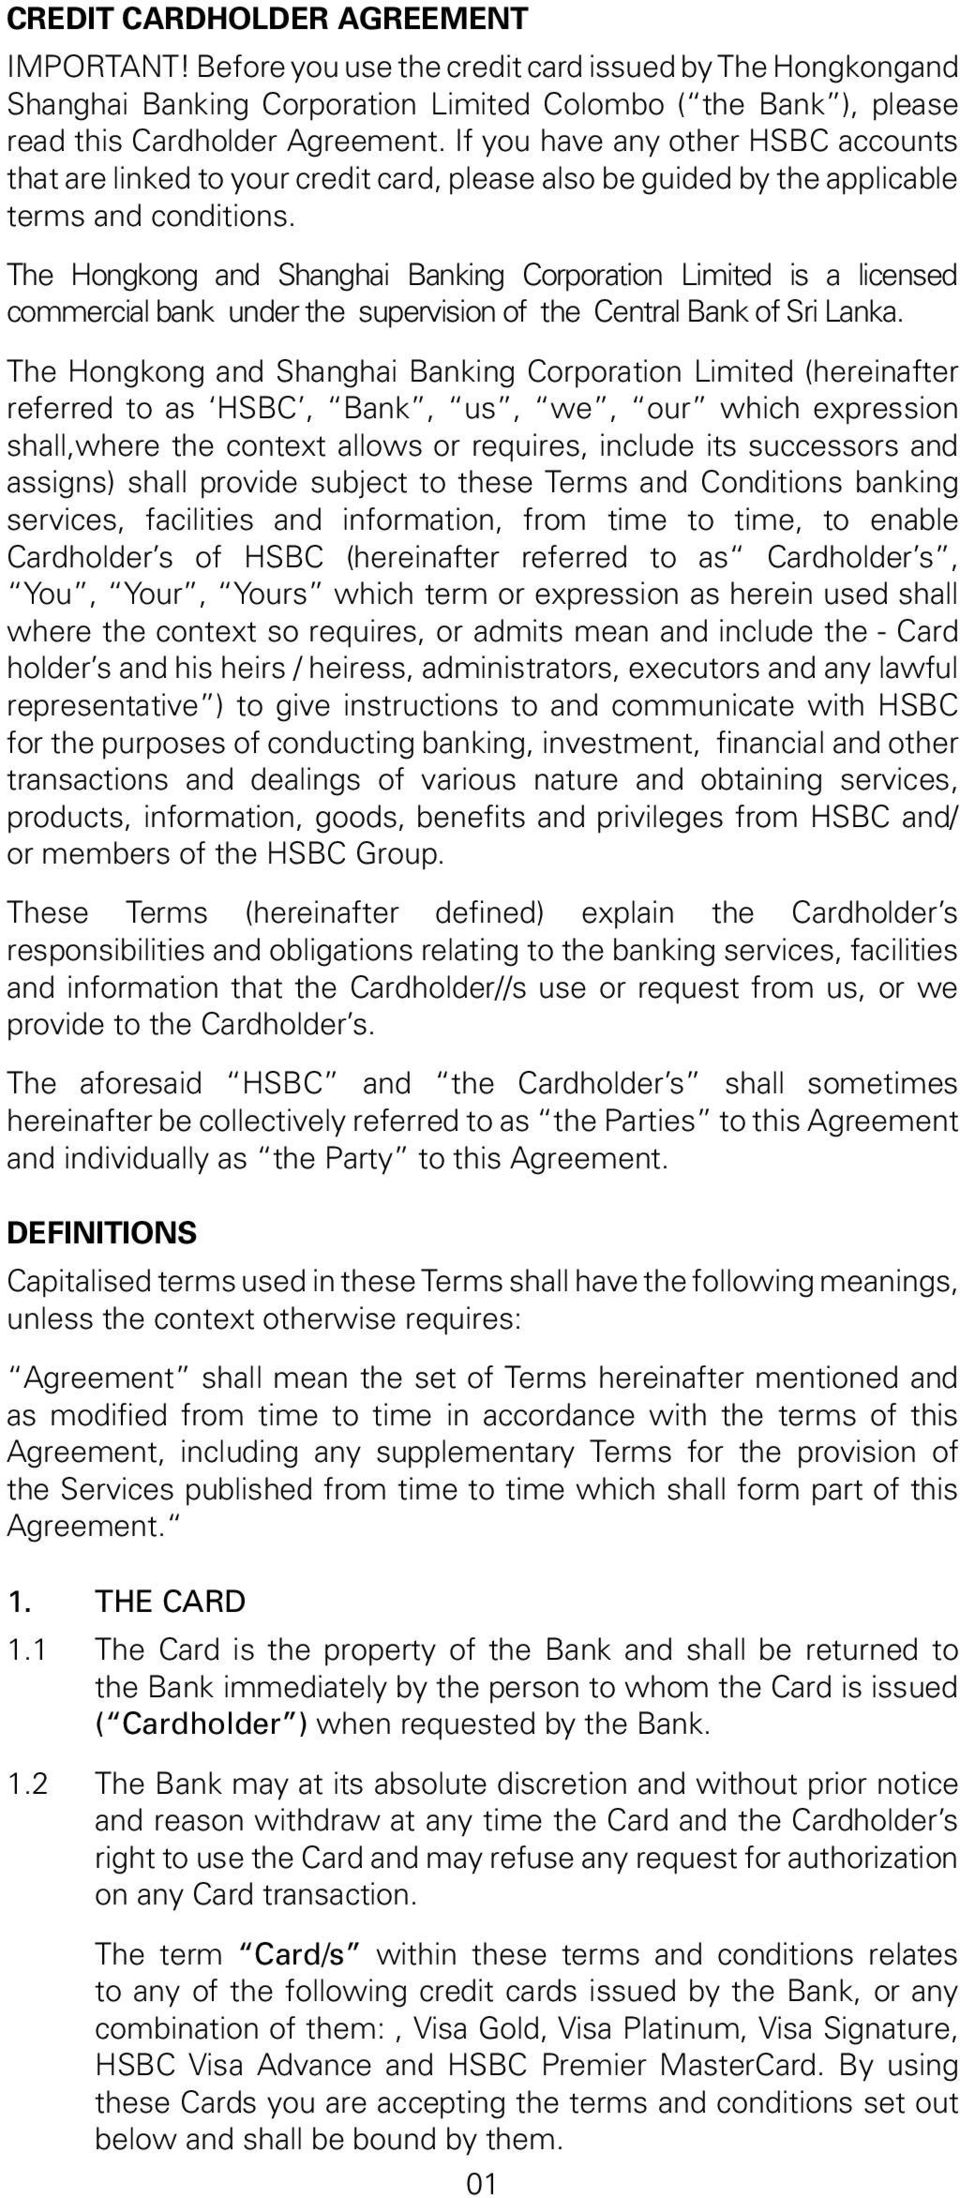 General Terms and Conditions for HSBC Credit Cards - PDF